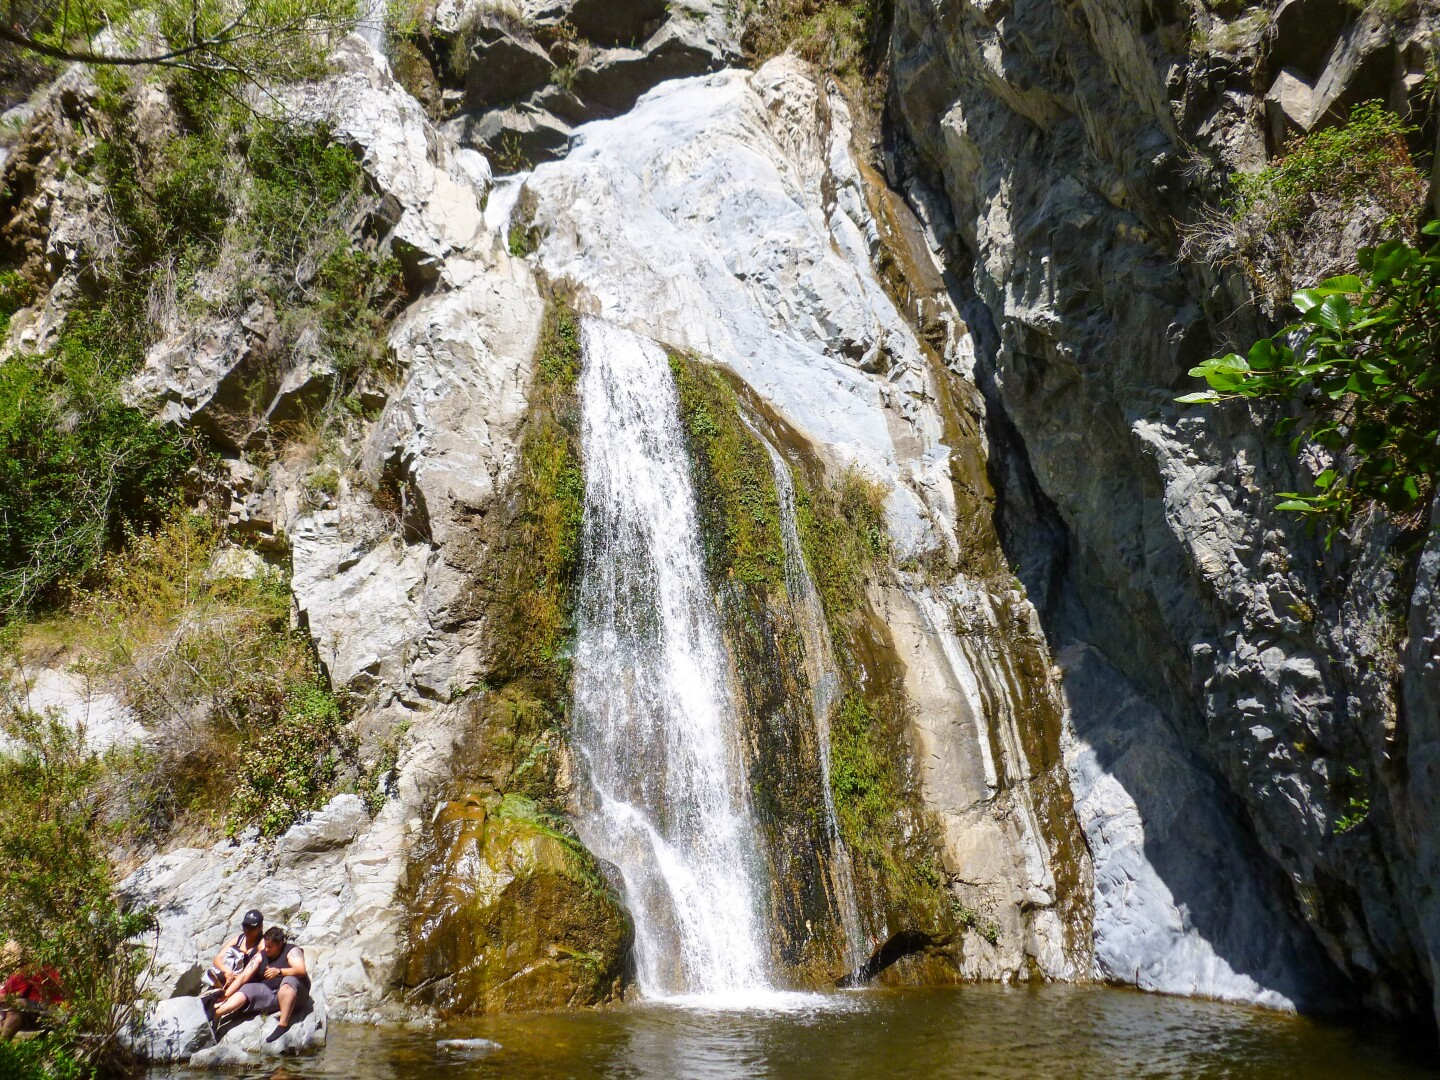 The waterfall at Fish Creek in Angeles National Forest. At the bottom left corner of the photograph are two hikers resting by the creek.